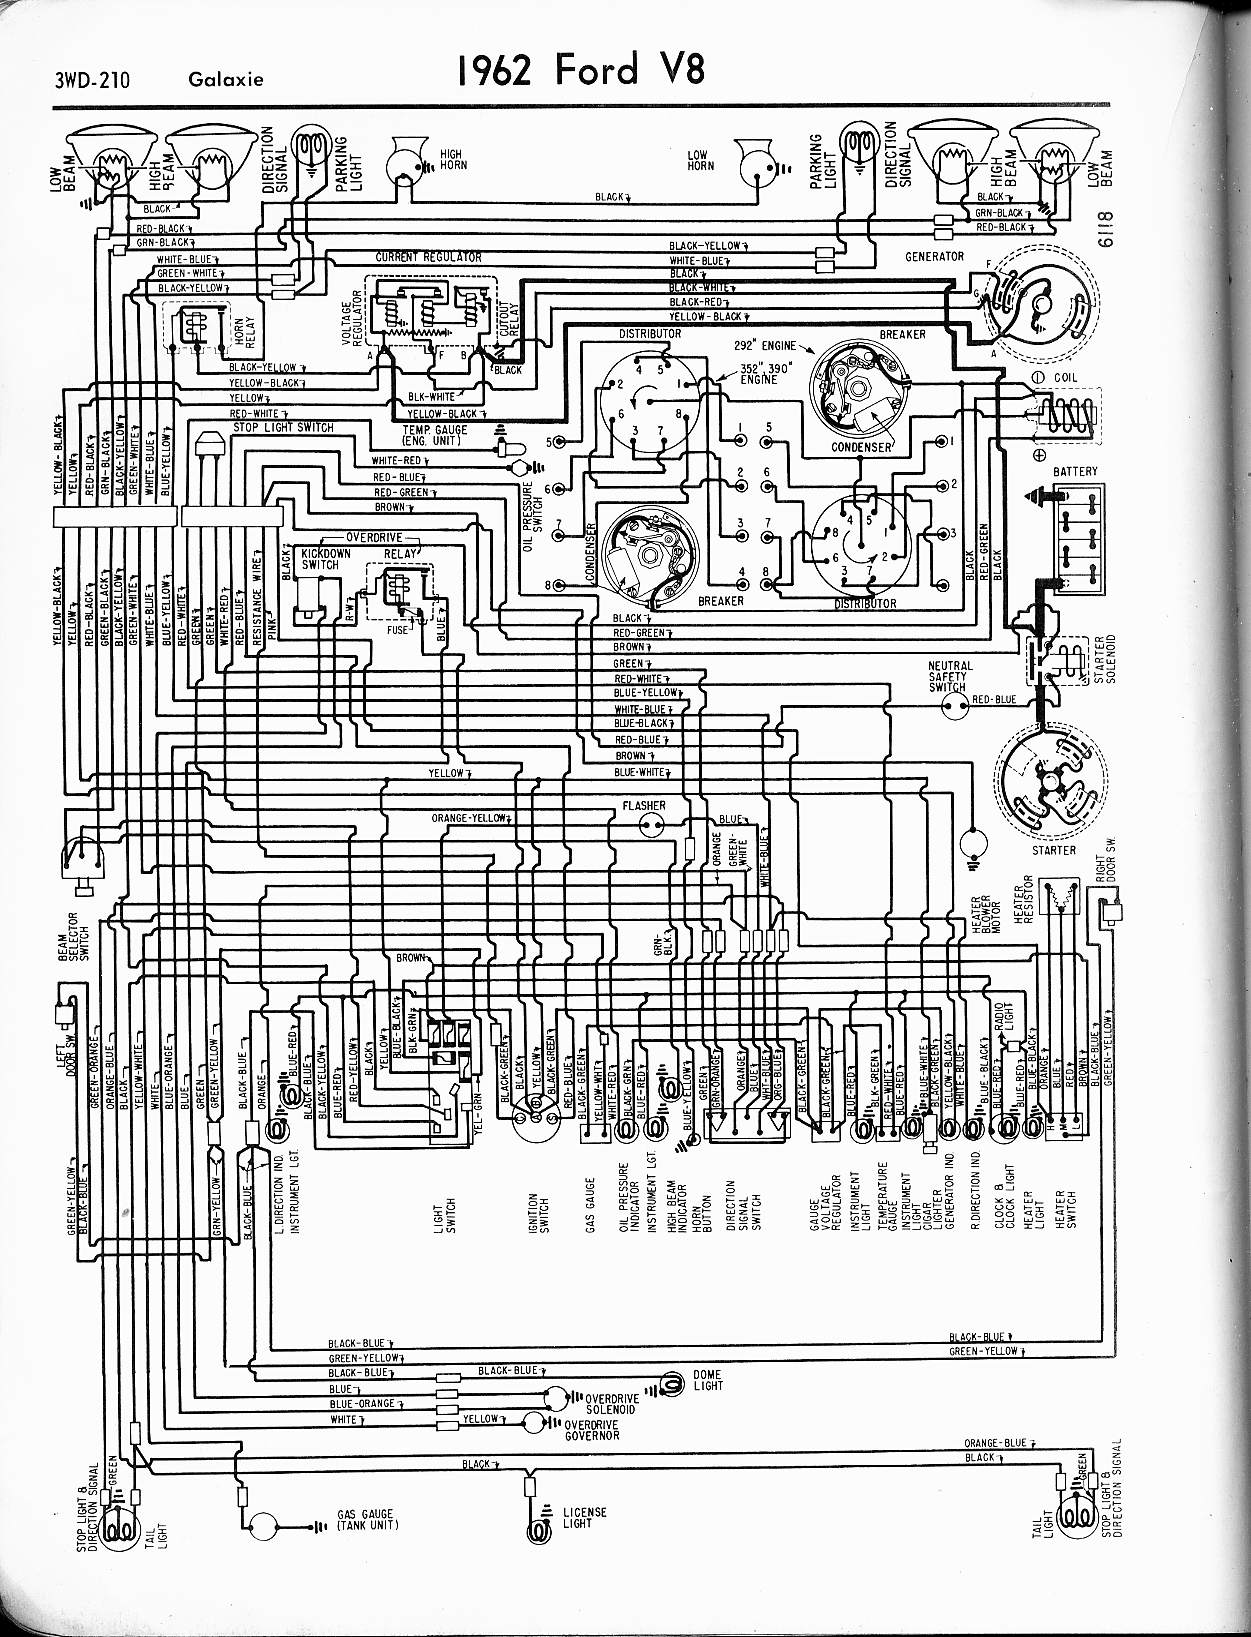 1957 f100 steering column wiring diagram wiring diagram 1973 ford f100 turn signal wiring diagram ford f100 wiring diagram for steering